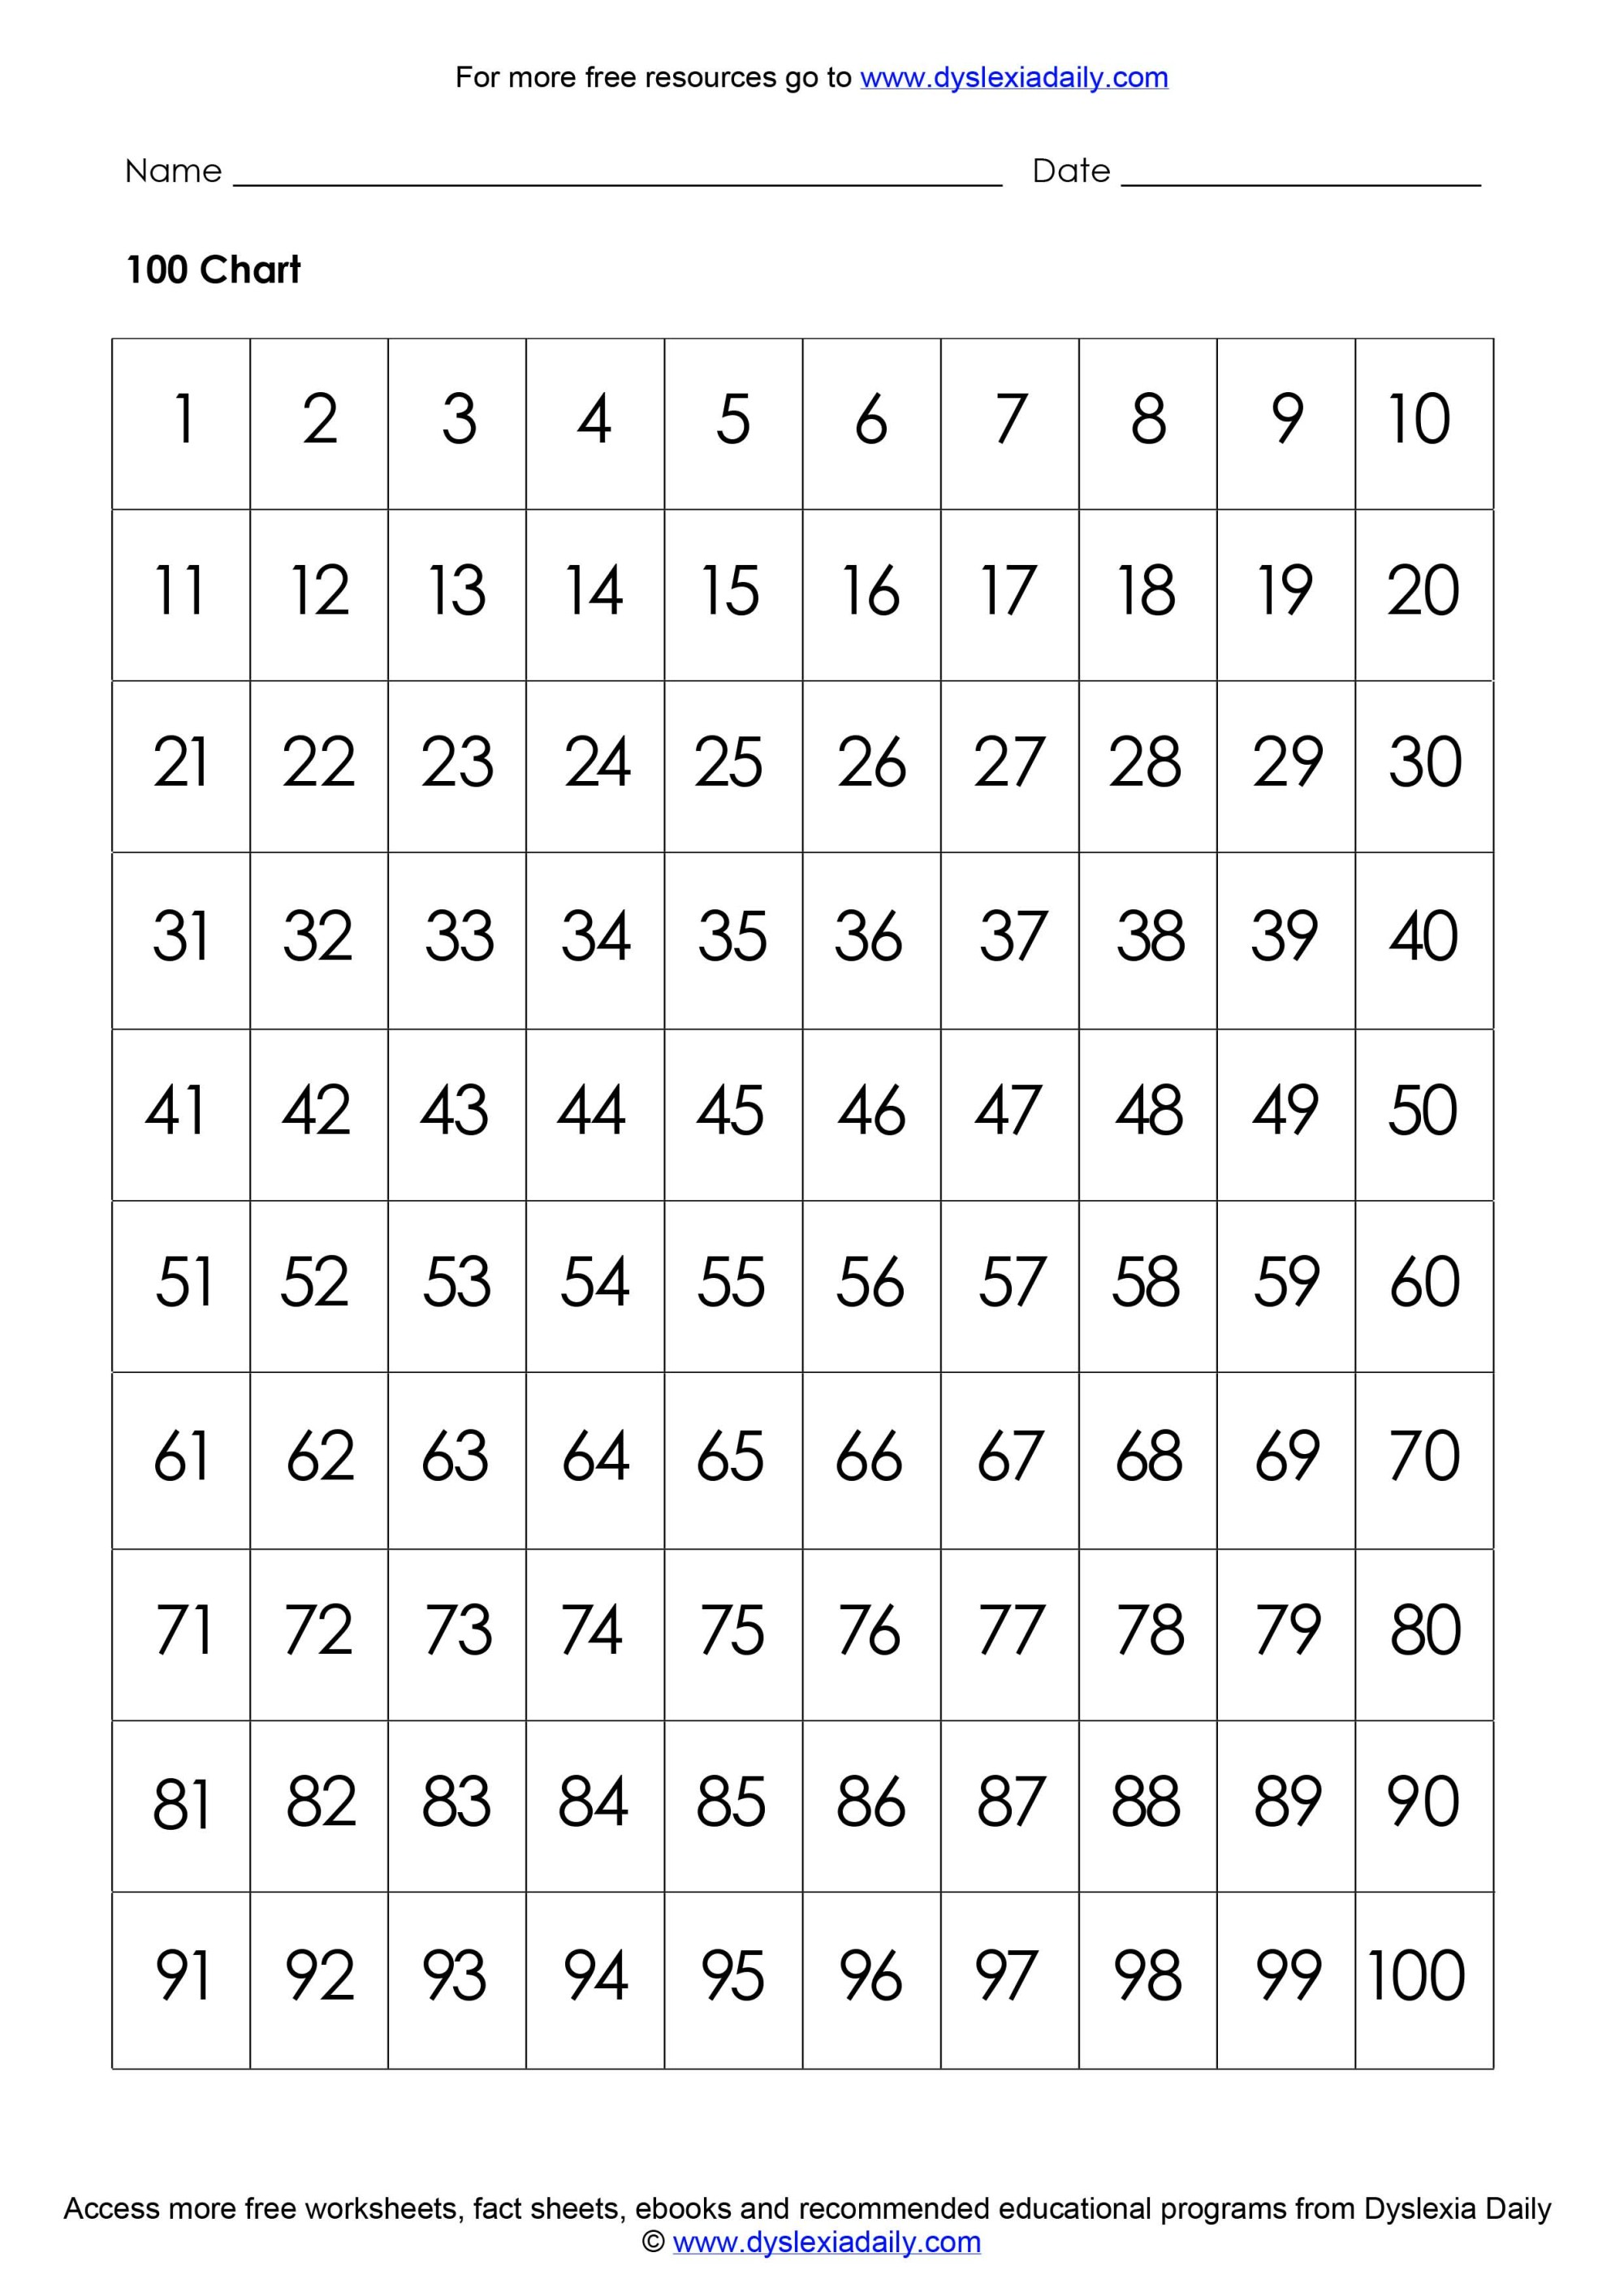 hight resolution of Free Dyslexia Math Worksheets Downloads   Dyslexia Daily